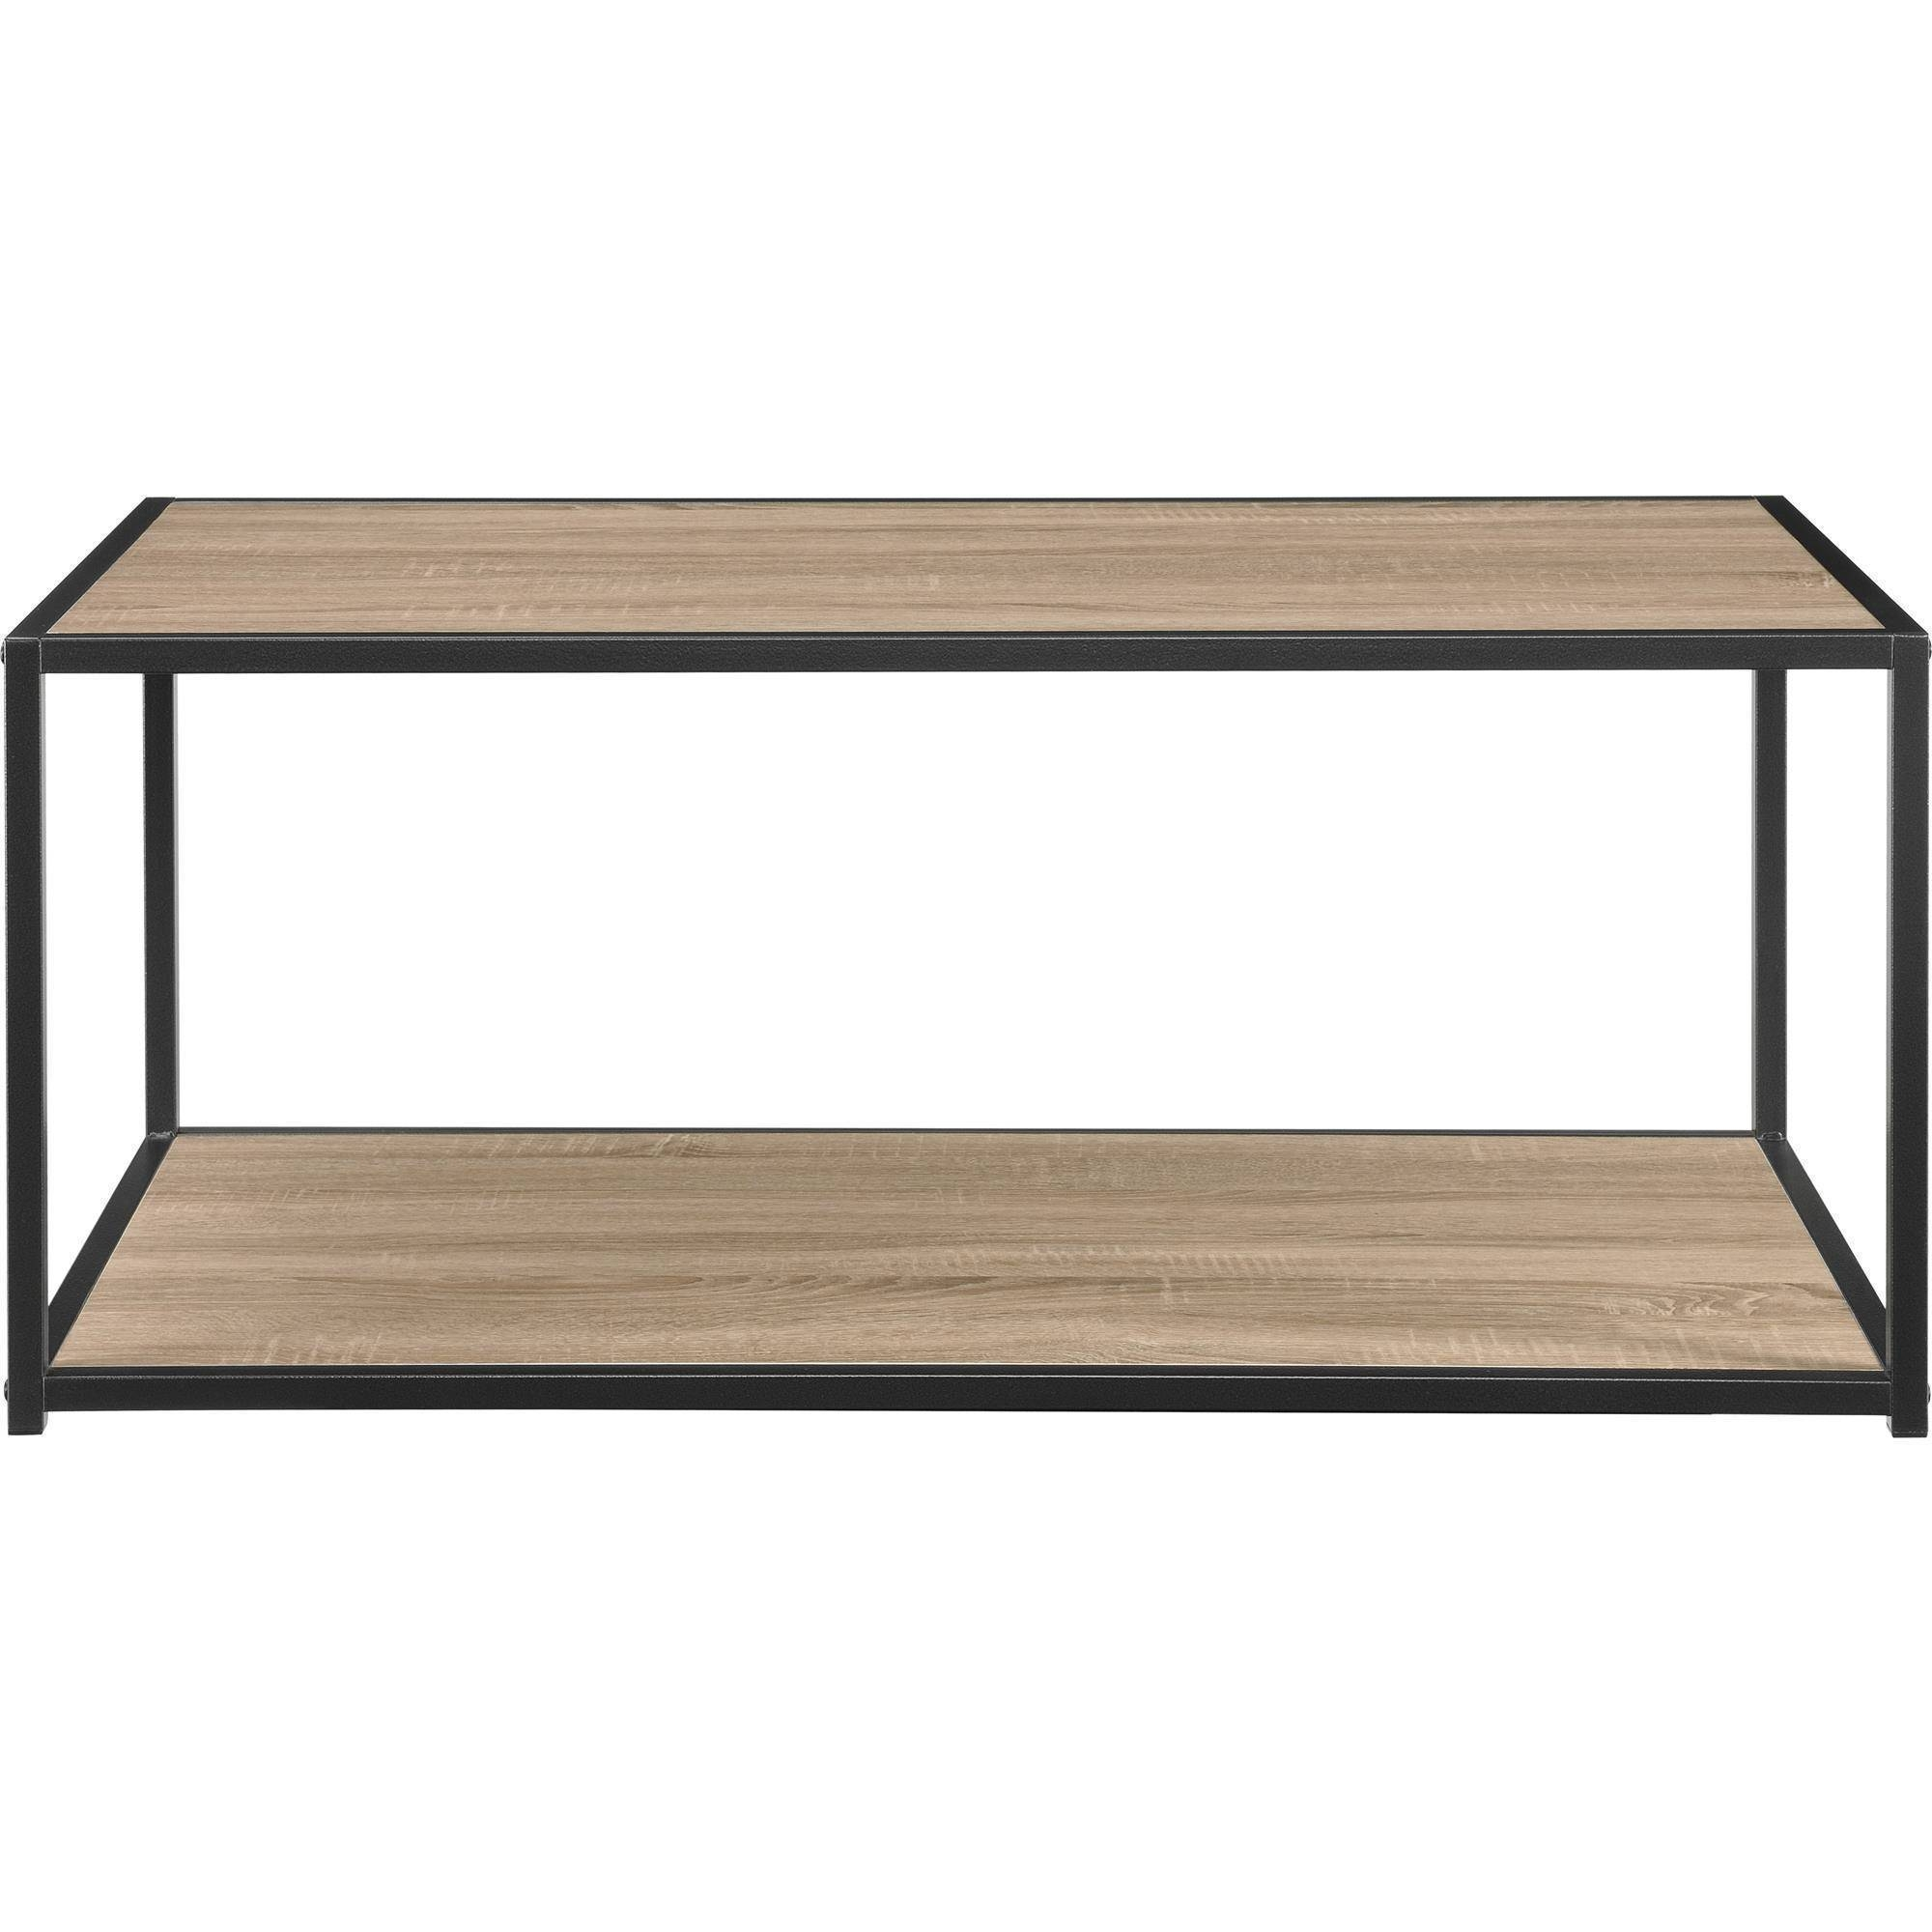 Ameriwood Home Canton Coffee Table With Metal Frame, Distressed throughout Metal Coffee Tables (Image 2 of 30)